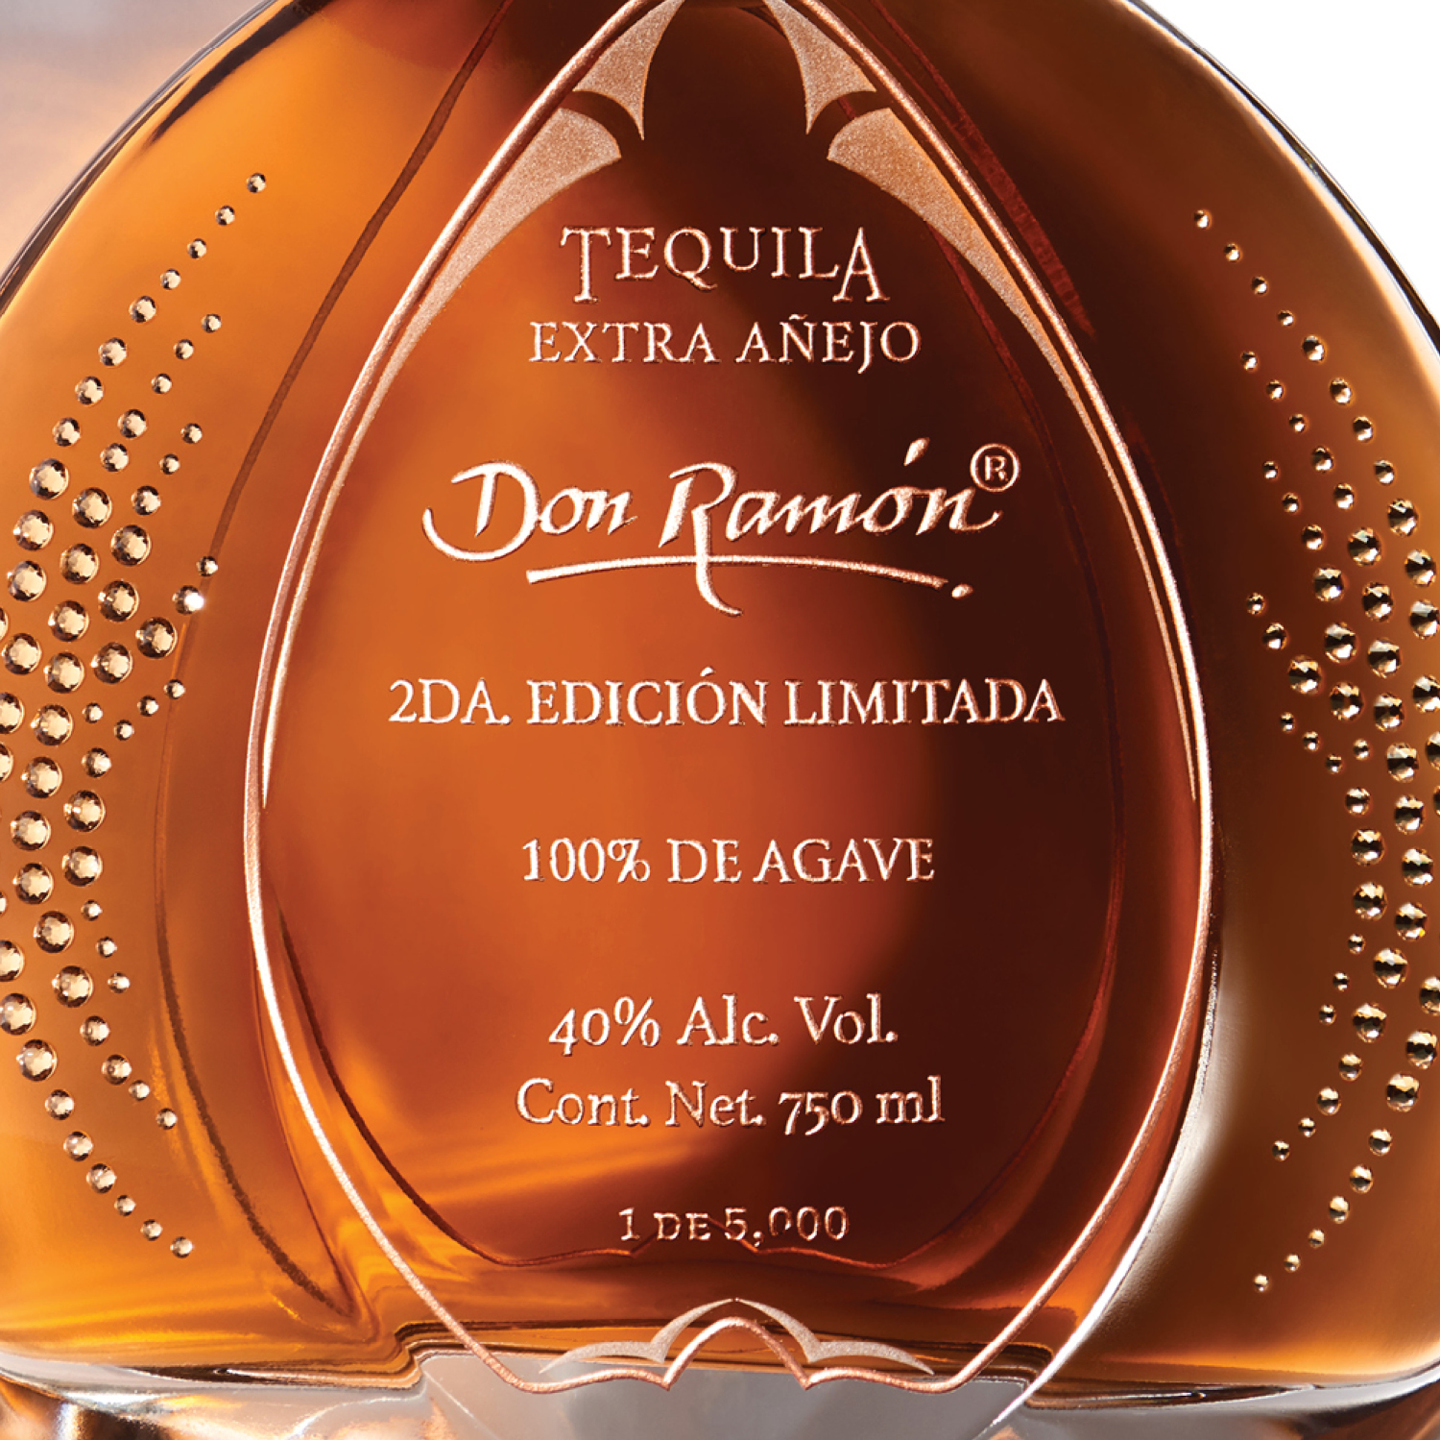 Tequila Don Ramón Limited Edition Extra Añejo